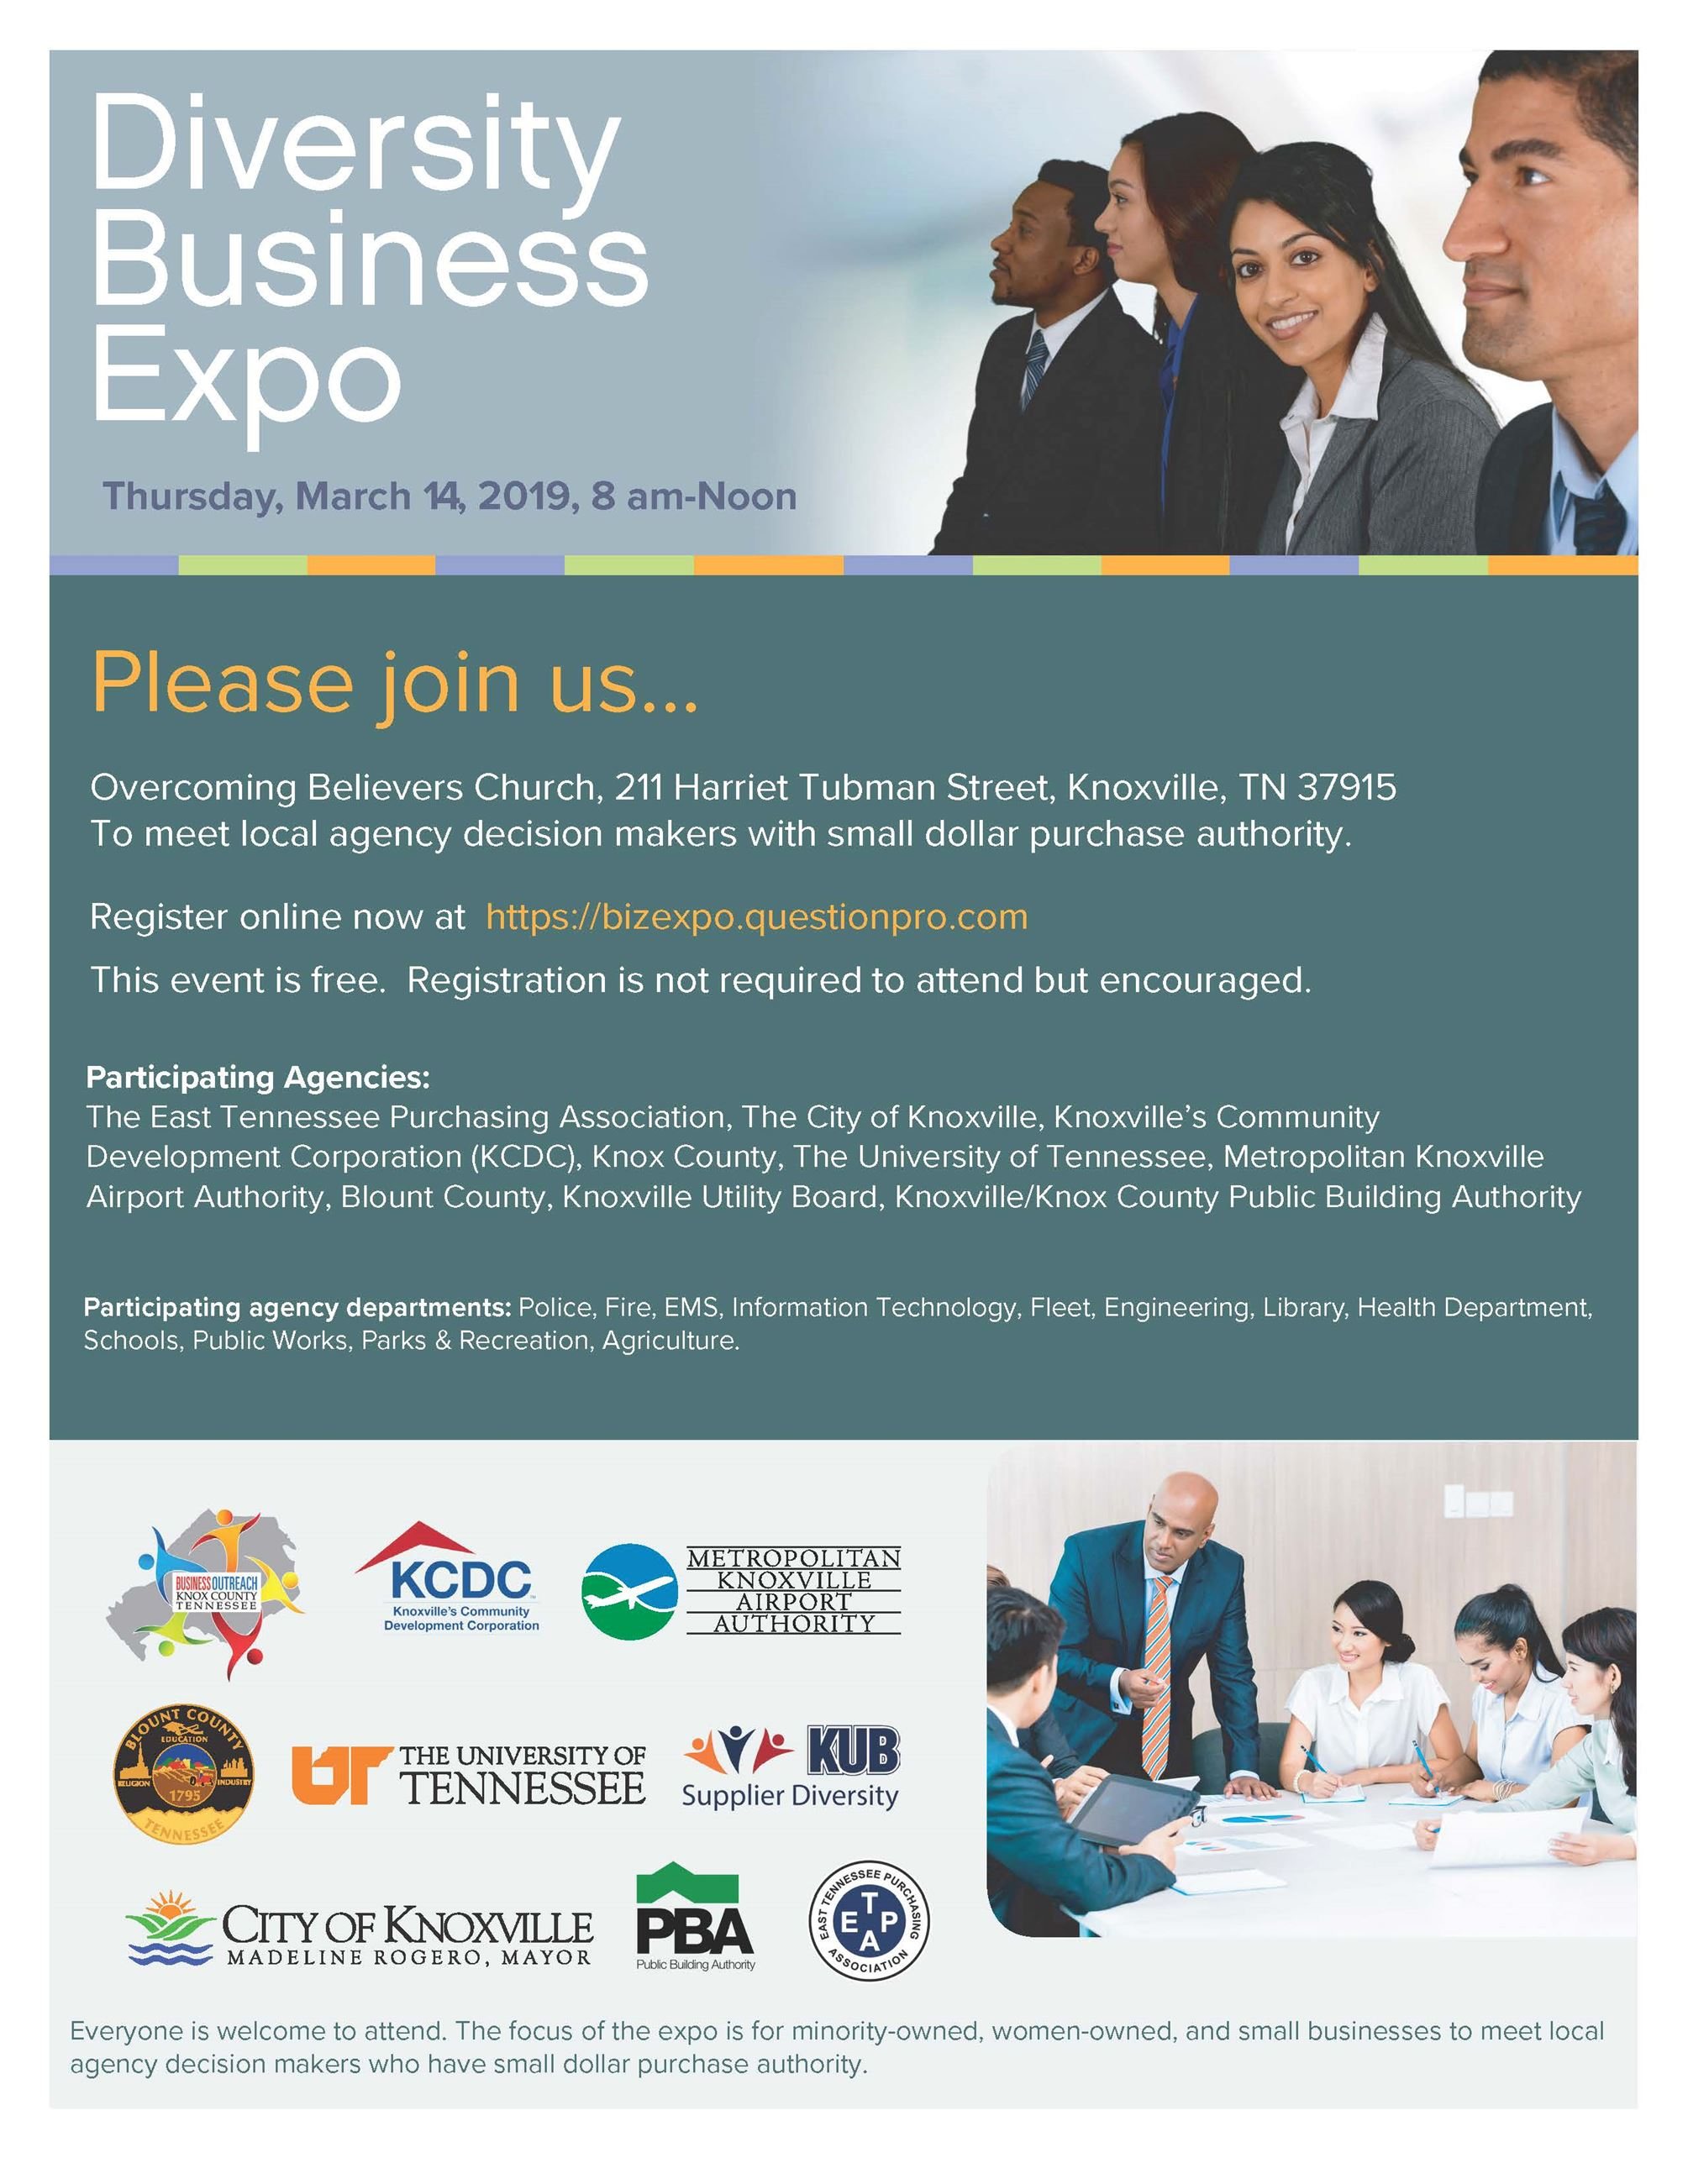 Diversity Business Expo Flyer - FINAL (1)